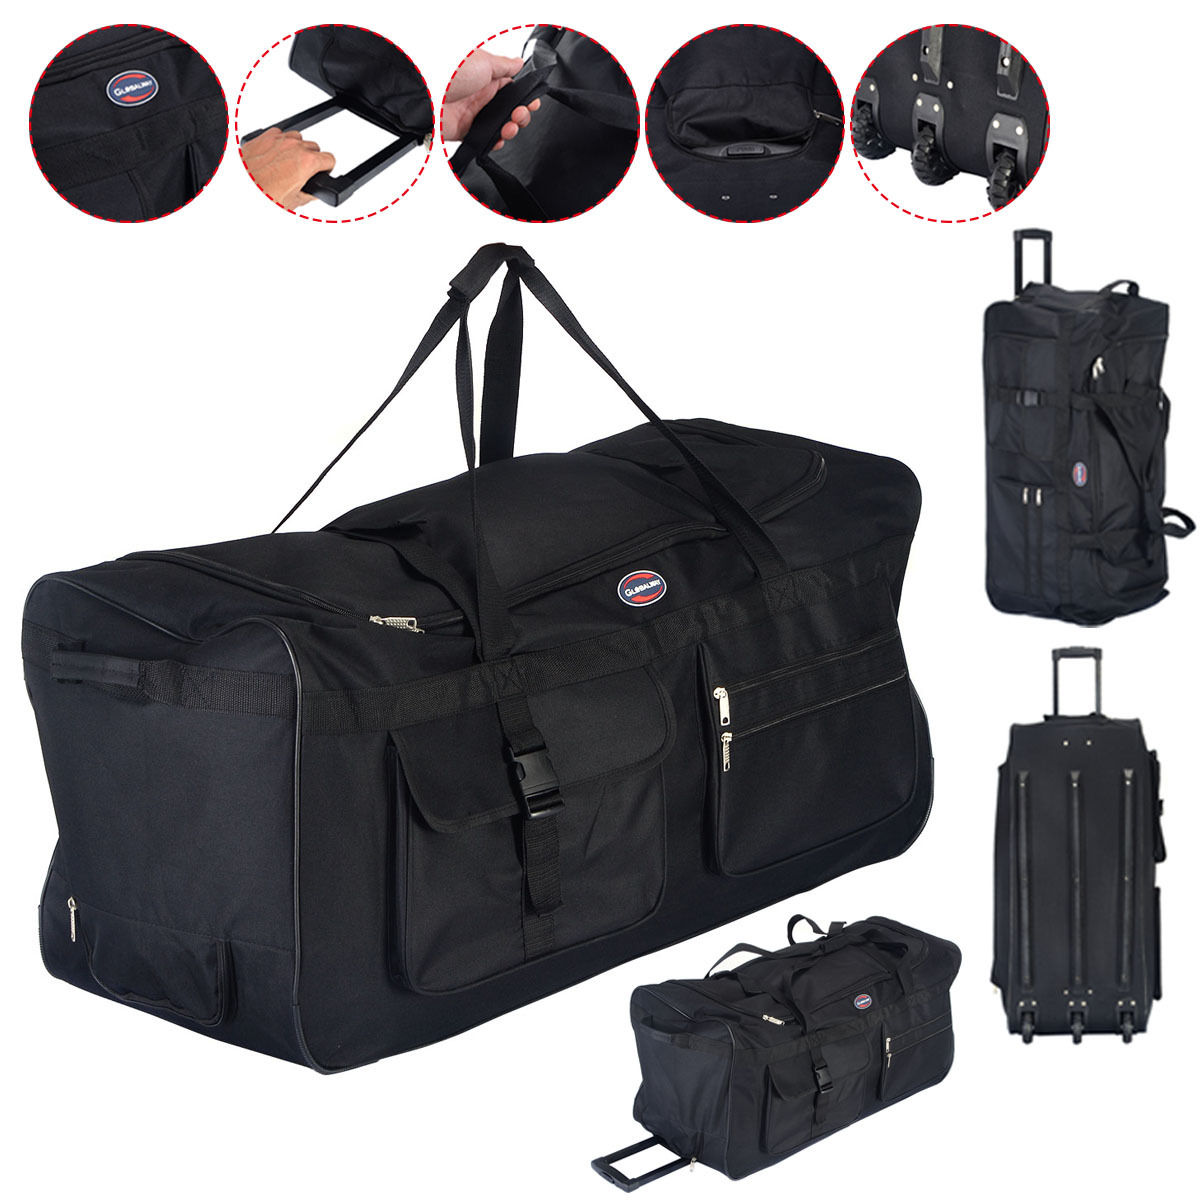 Costway 36'' Rolling Wheeled Tote Duffle Bag Luggage Travel Duffle Suitcase Black by Costway